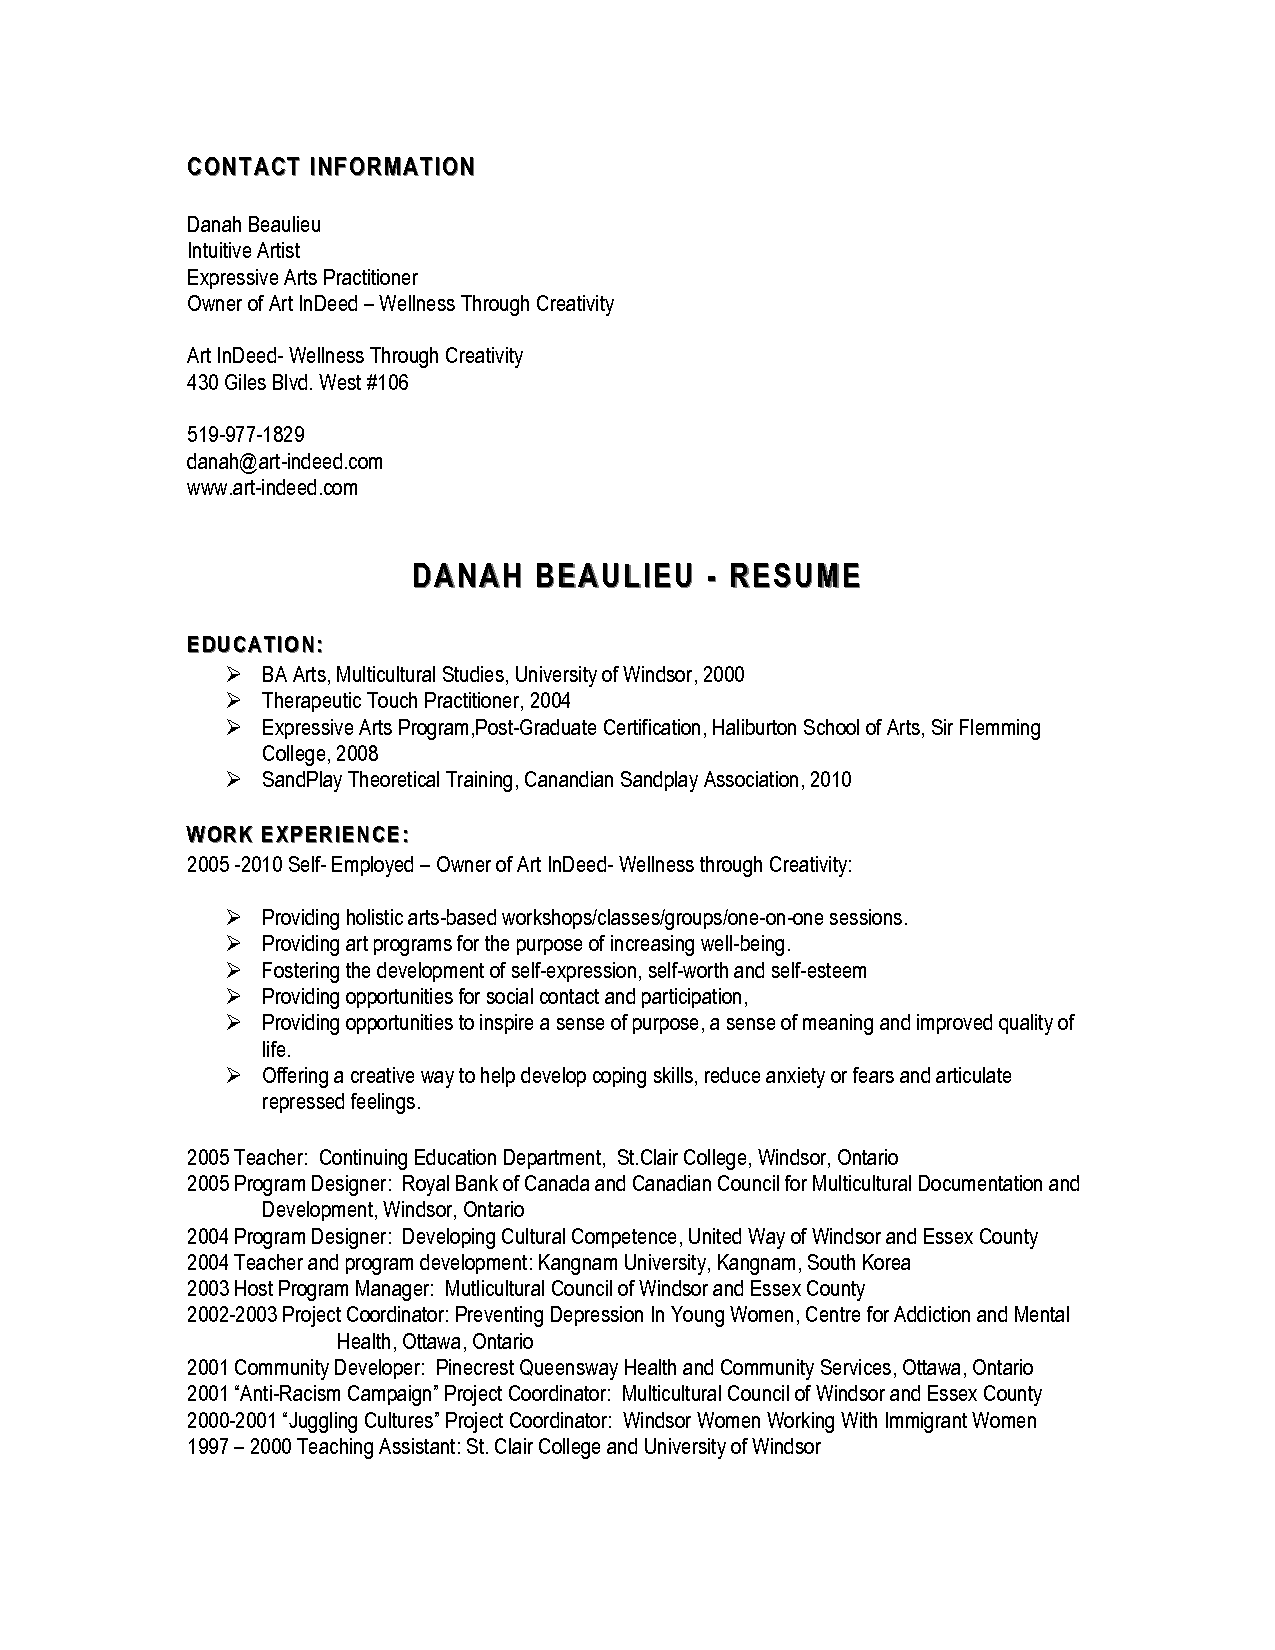 Cv Template Indeed Resume Template Free Job Resume